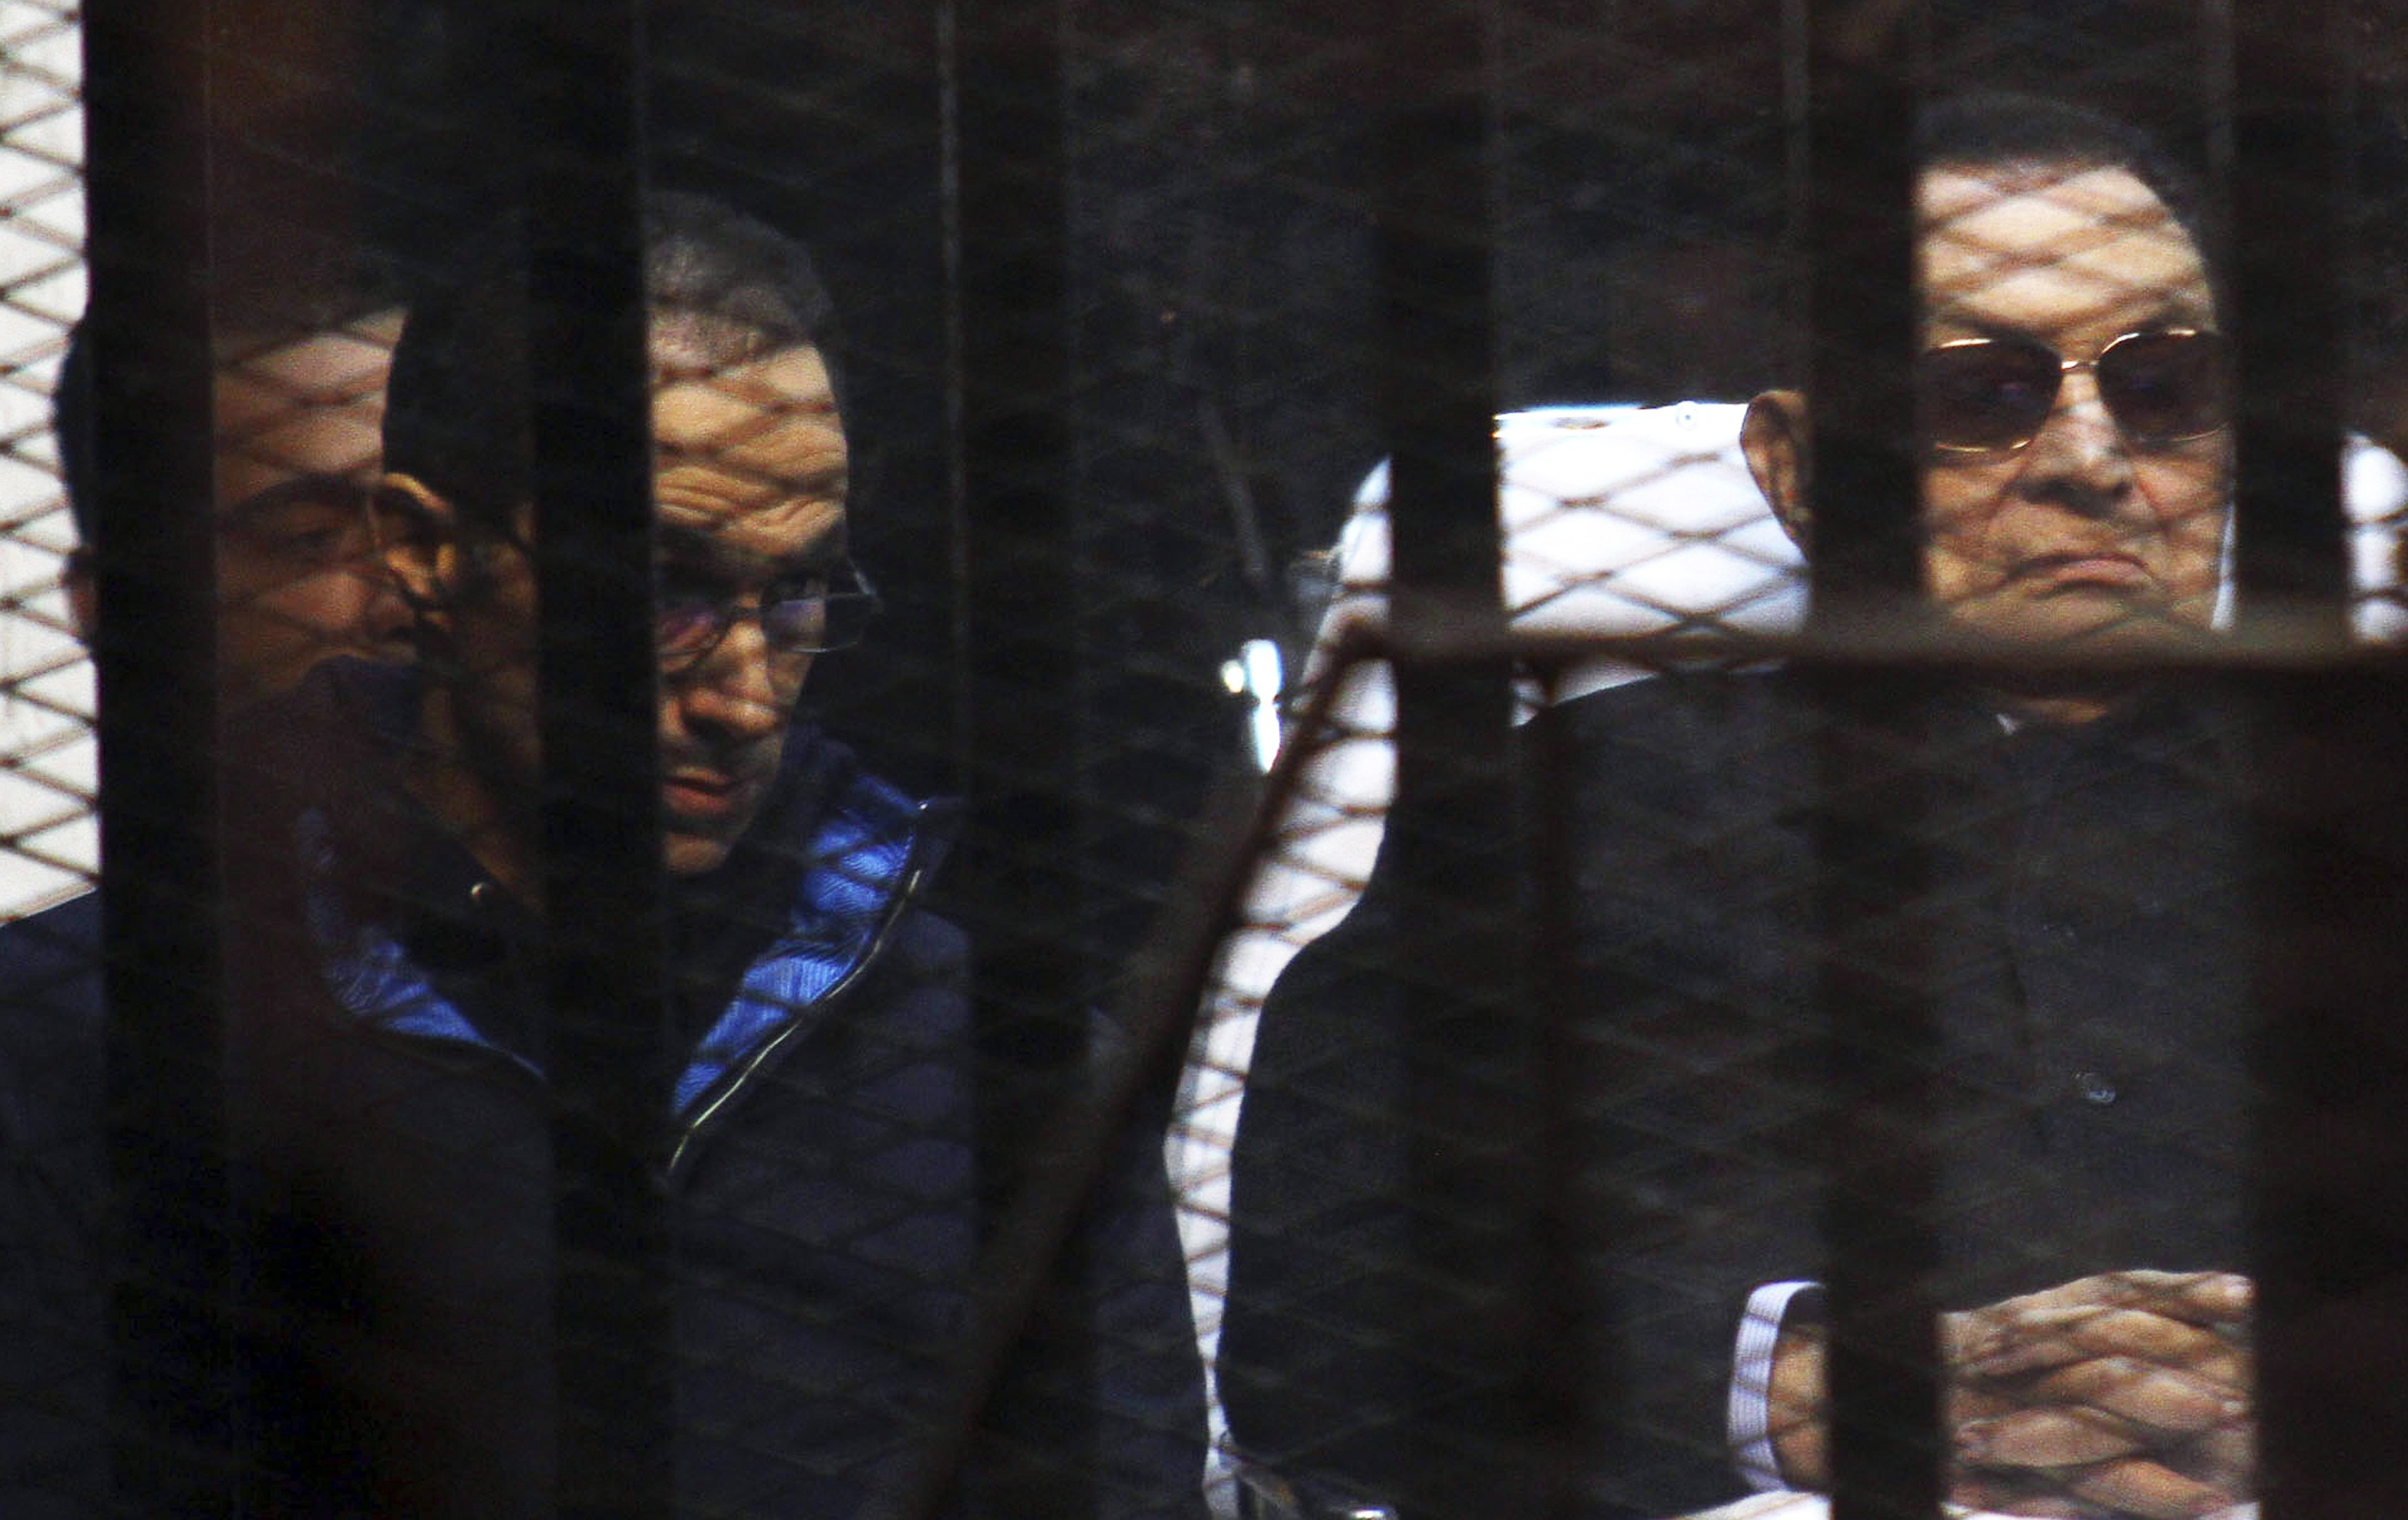 Mubarak's sons released from Egypt prison - prison officials